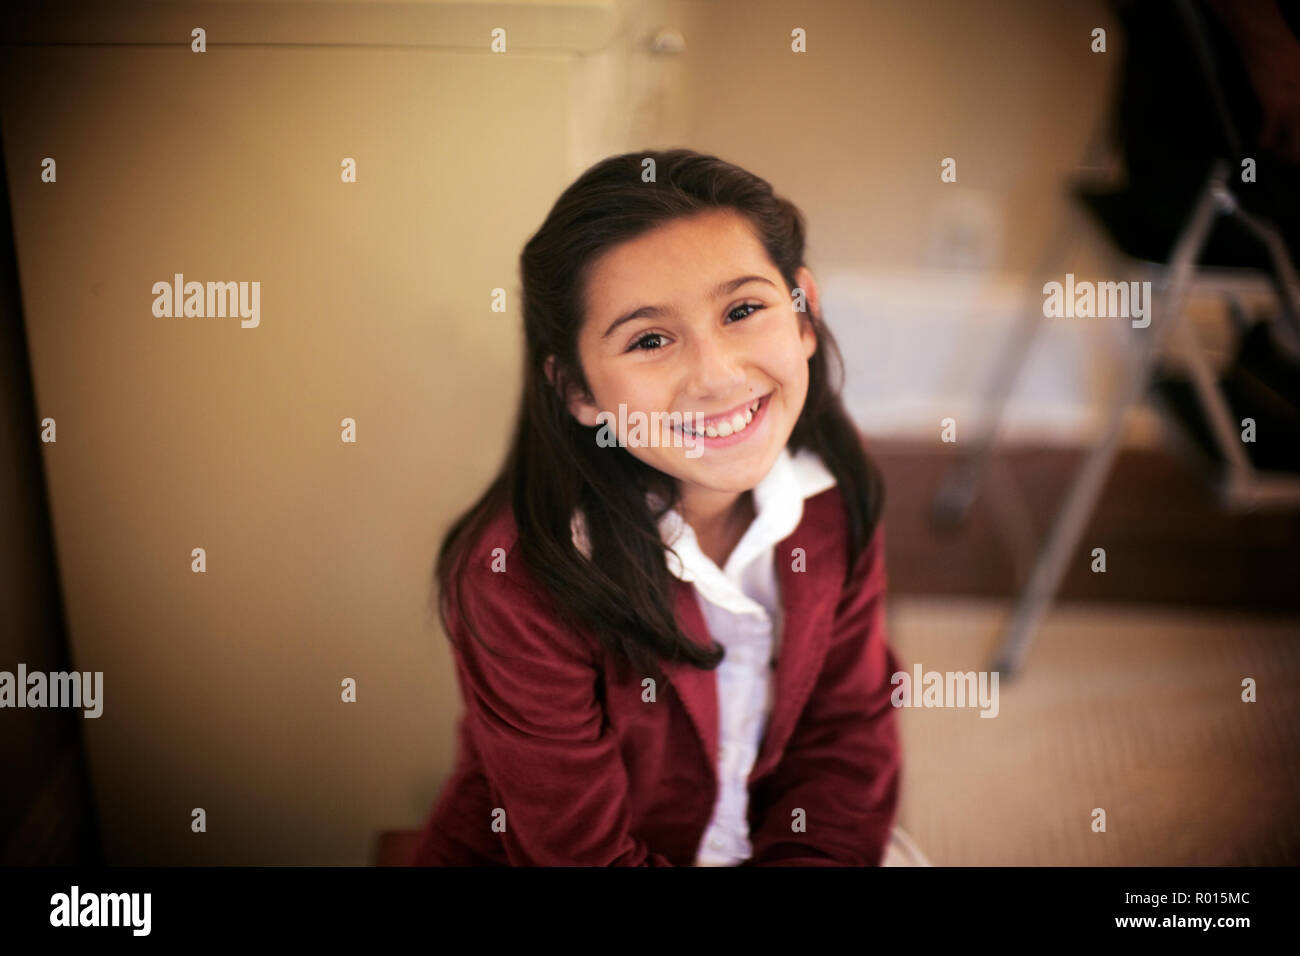 Portrait of an adorable young girl. - Stock Image